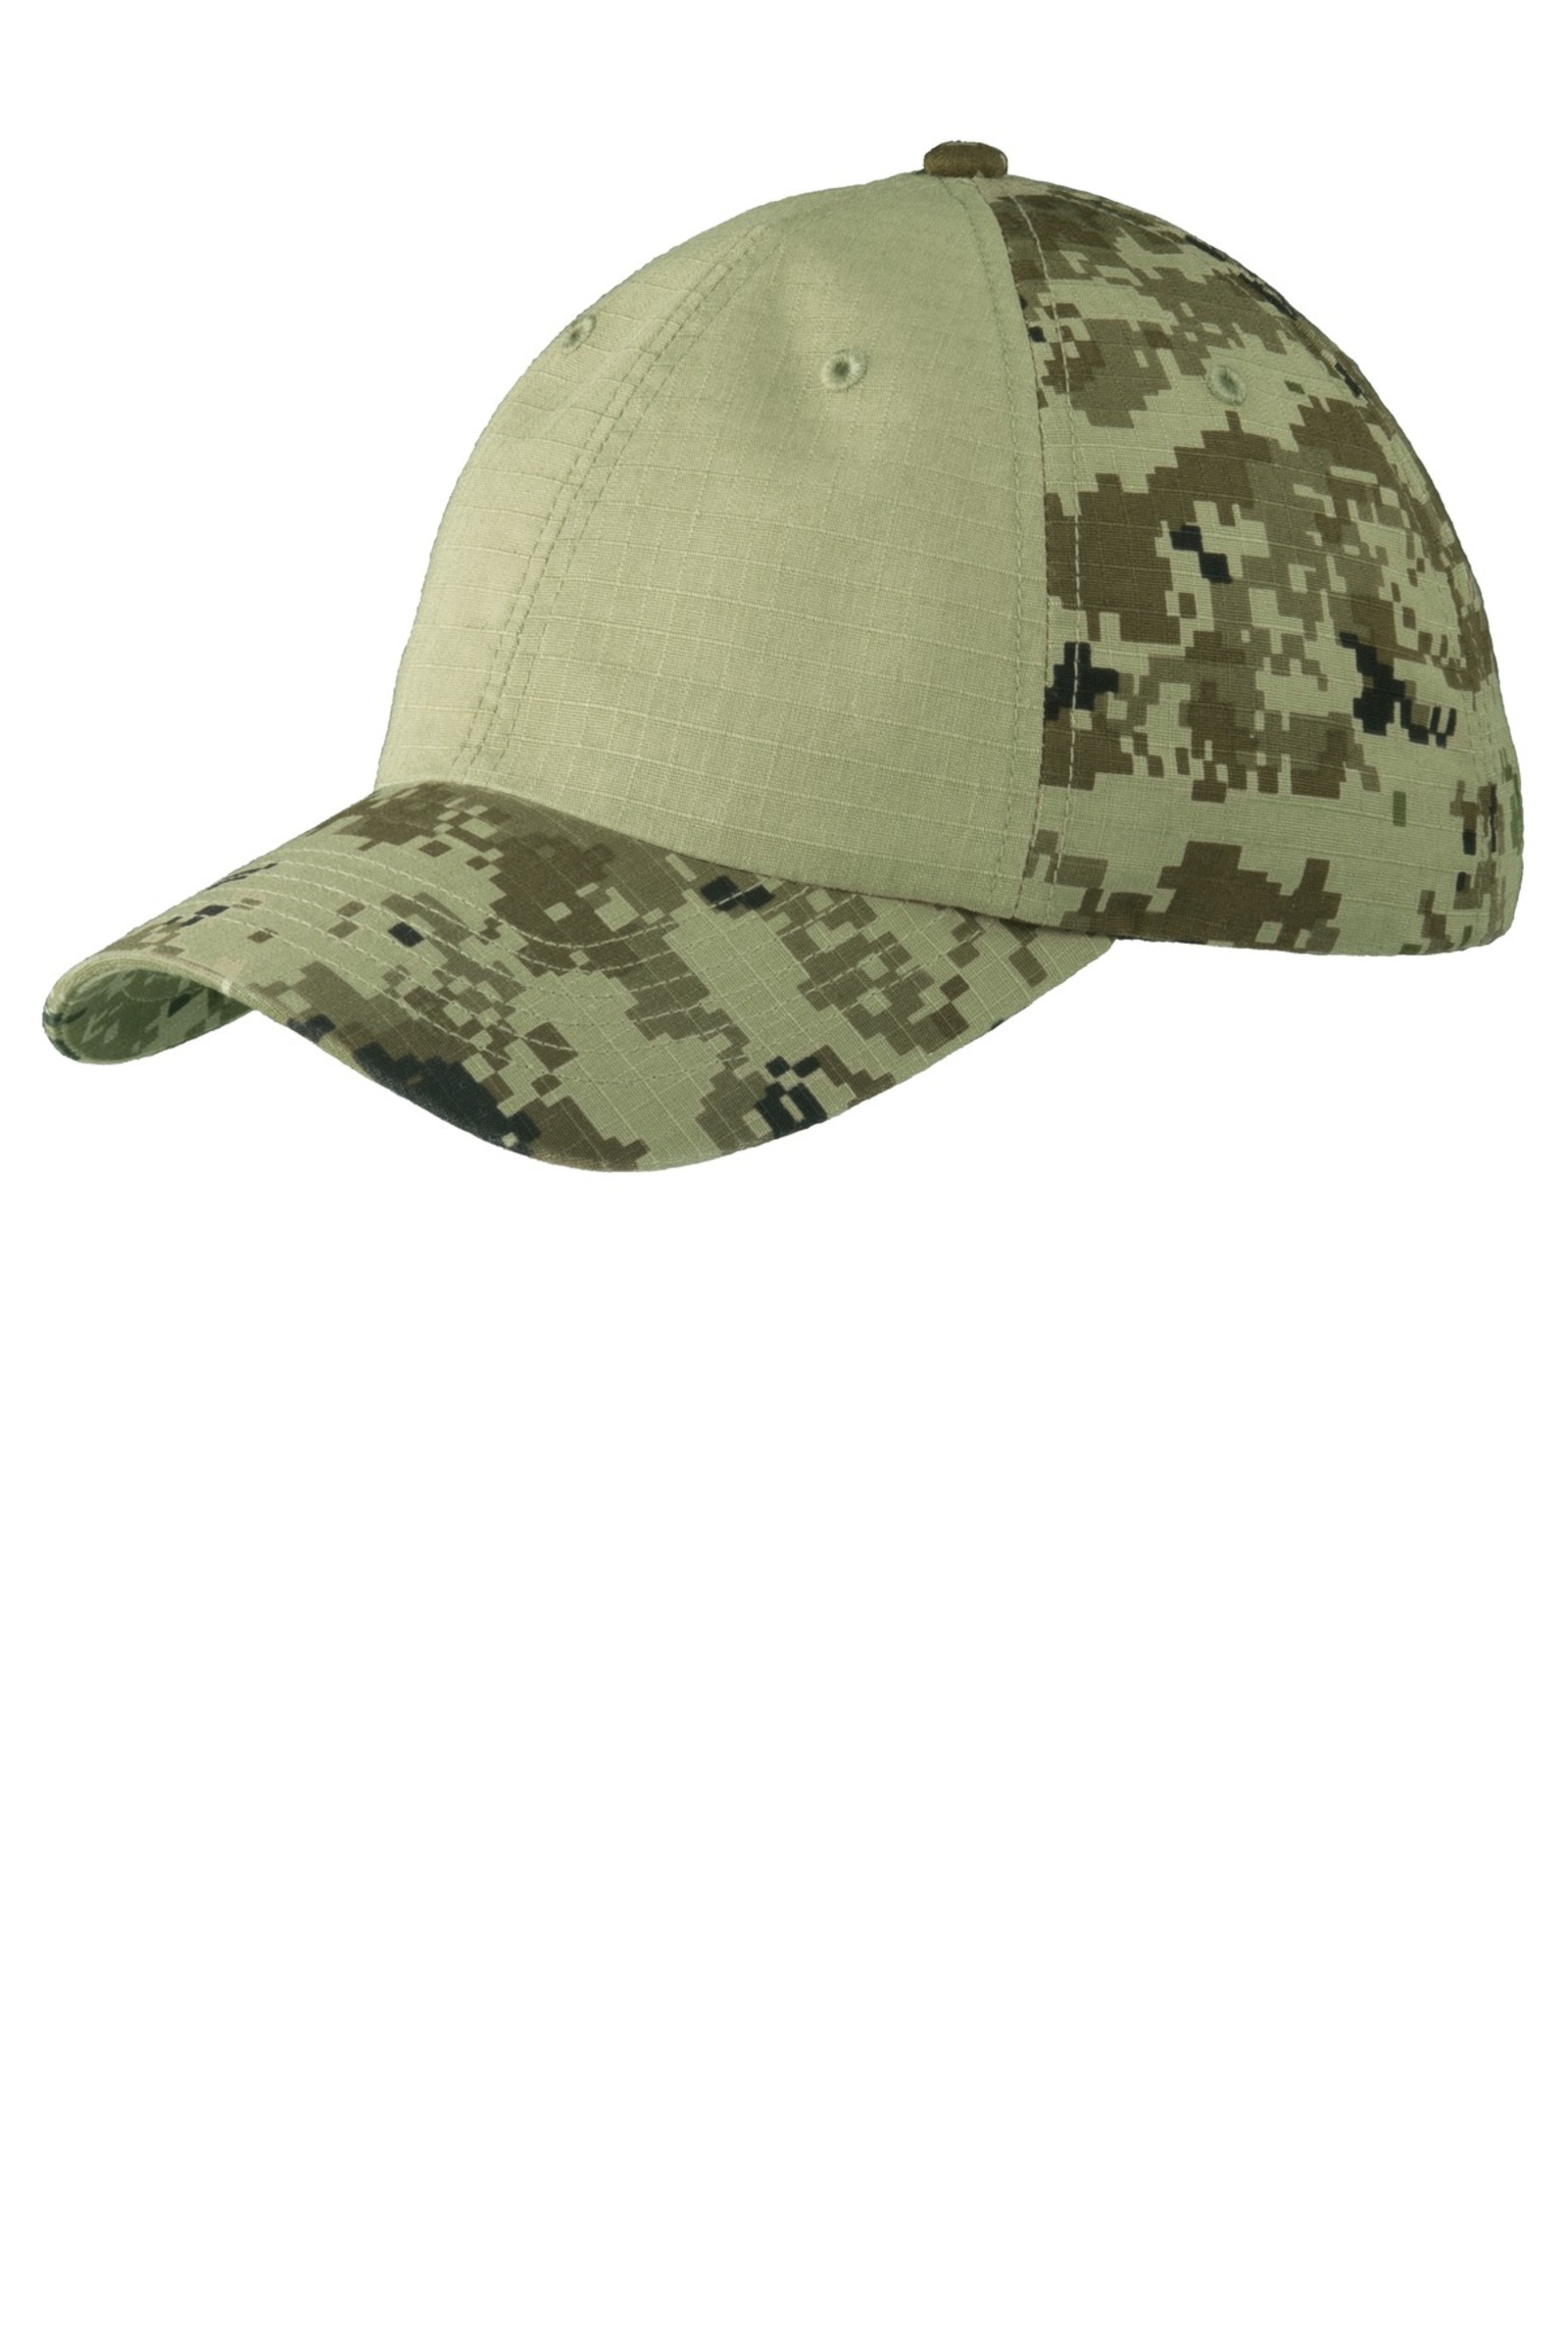 Port Authority Embroidered Colorblock Digital Ripstop Camouflage Hat